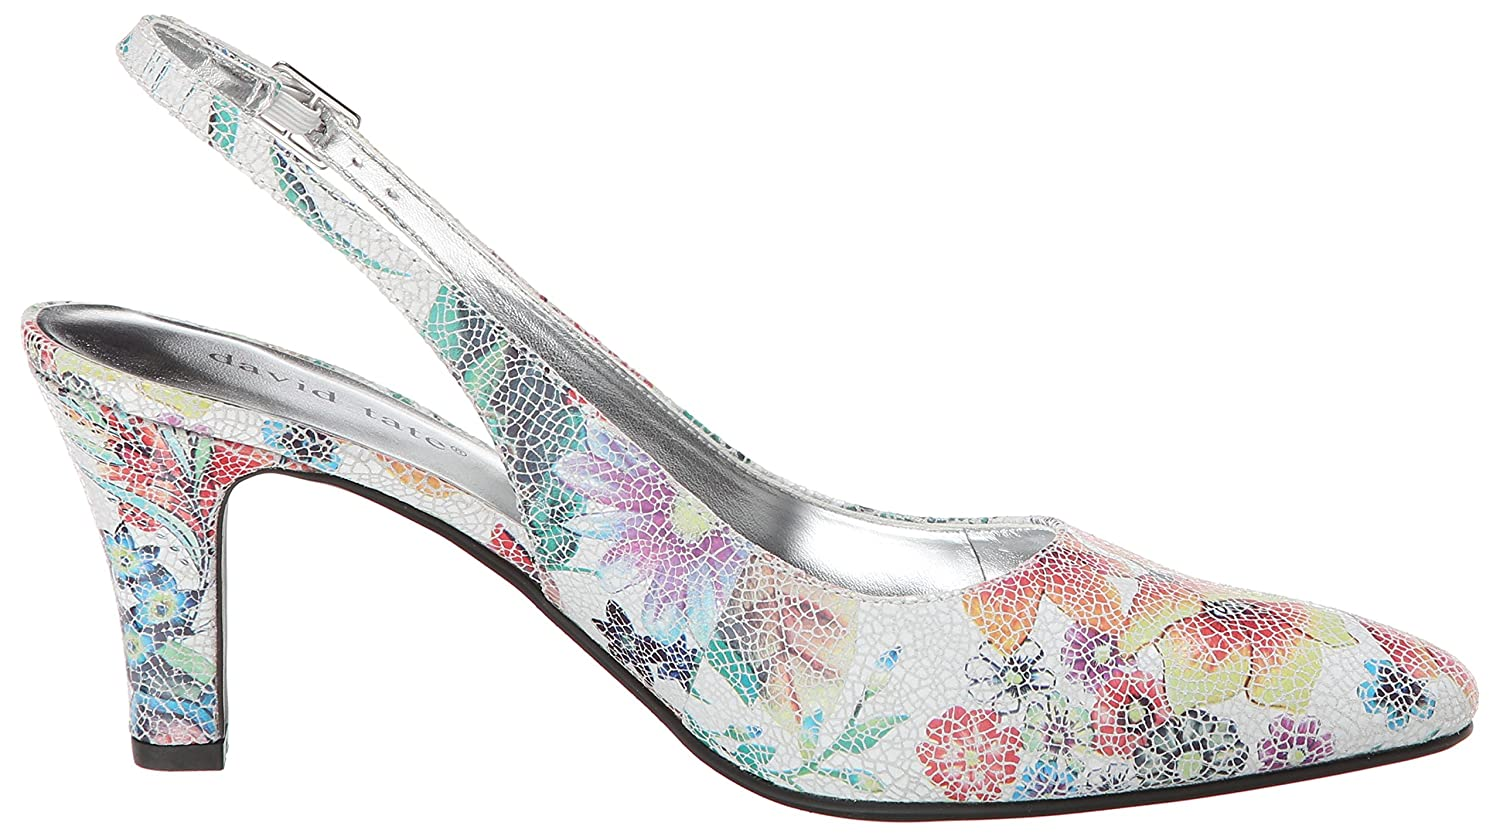 David Tate Women's Lace Floral Shoe B00M4Q71BY 9 XW US|Leather Floral Lace Print e23164